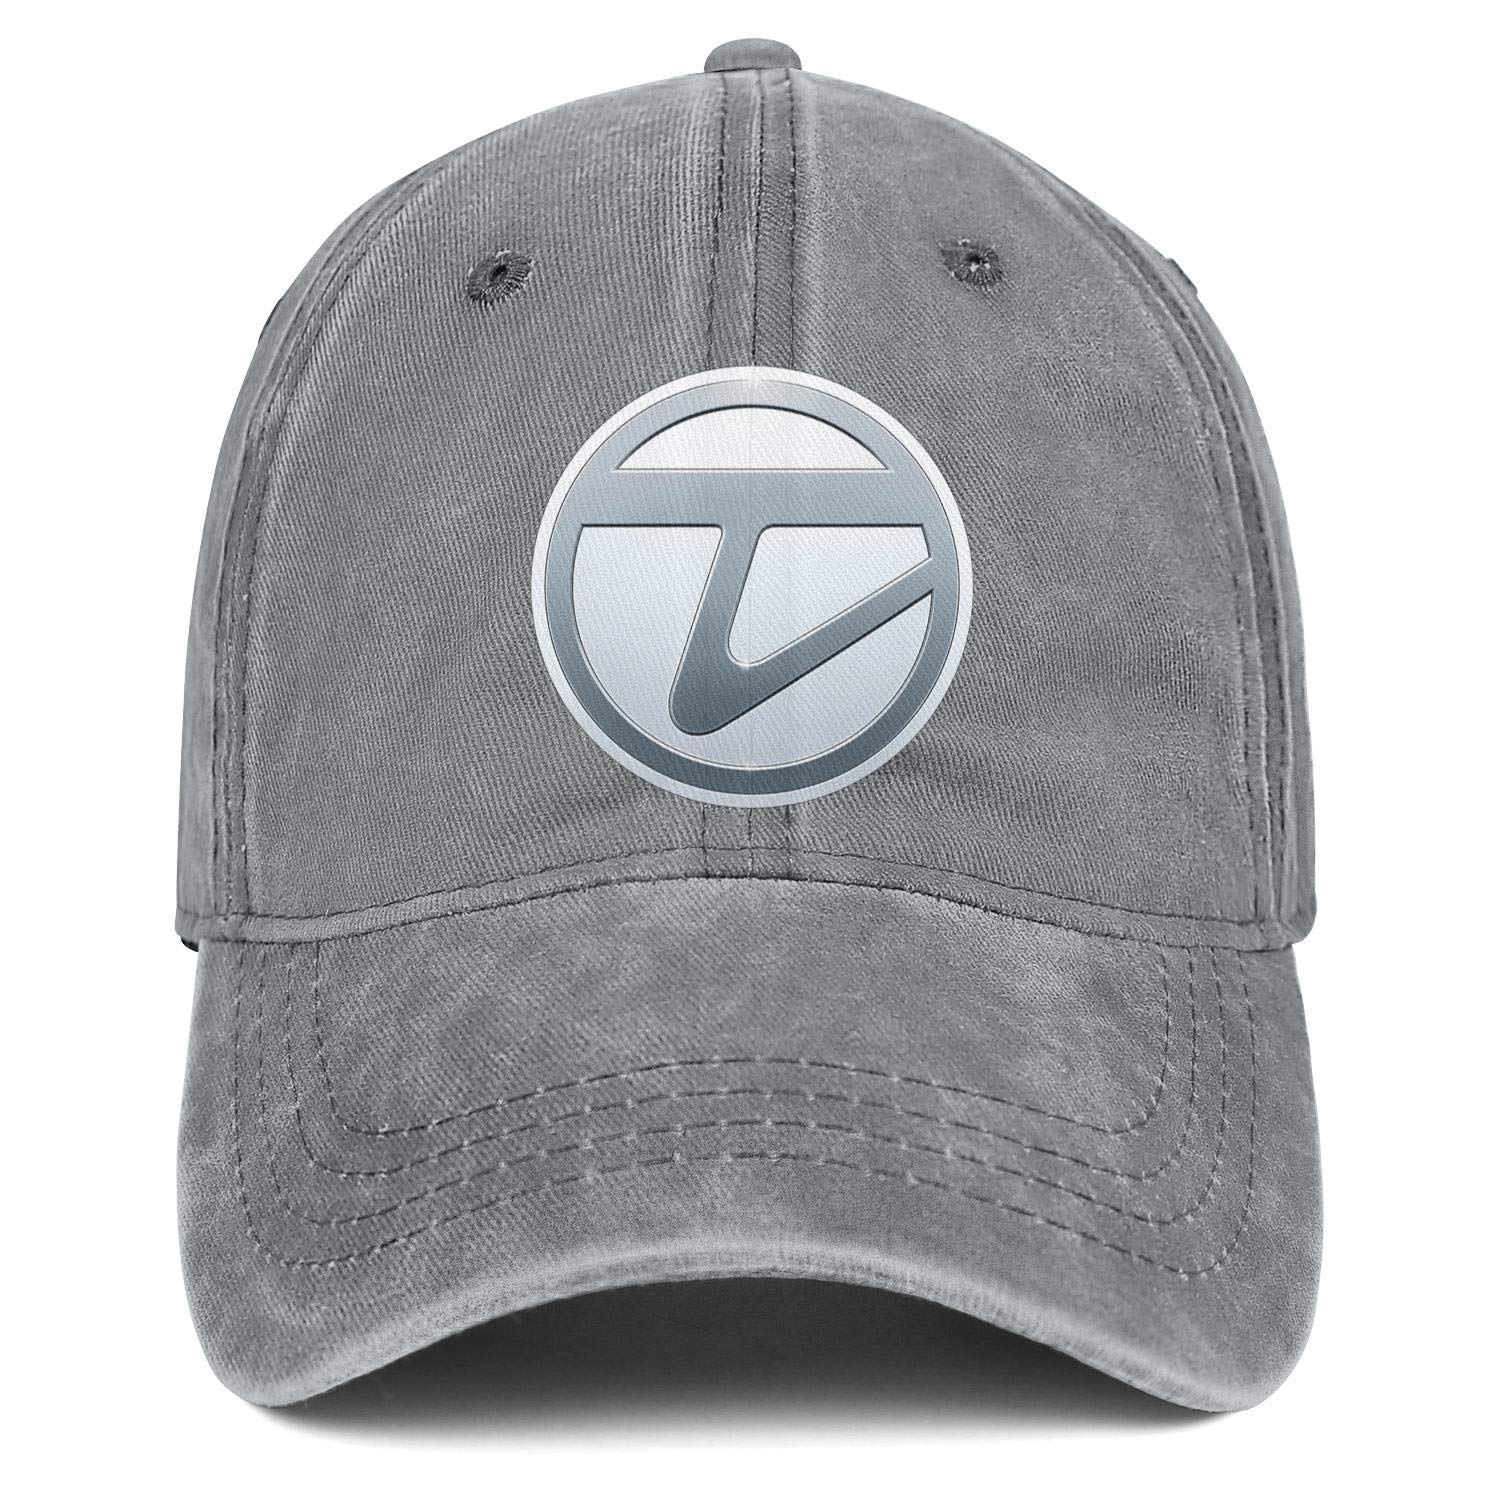 Men Women Hat Trabant-Logo Snapback Hats Visor Denim Cap Outdoor Caps